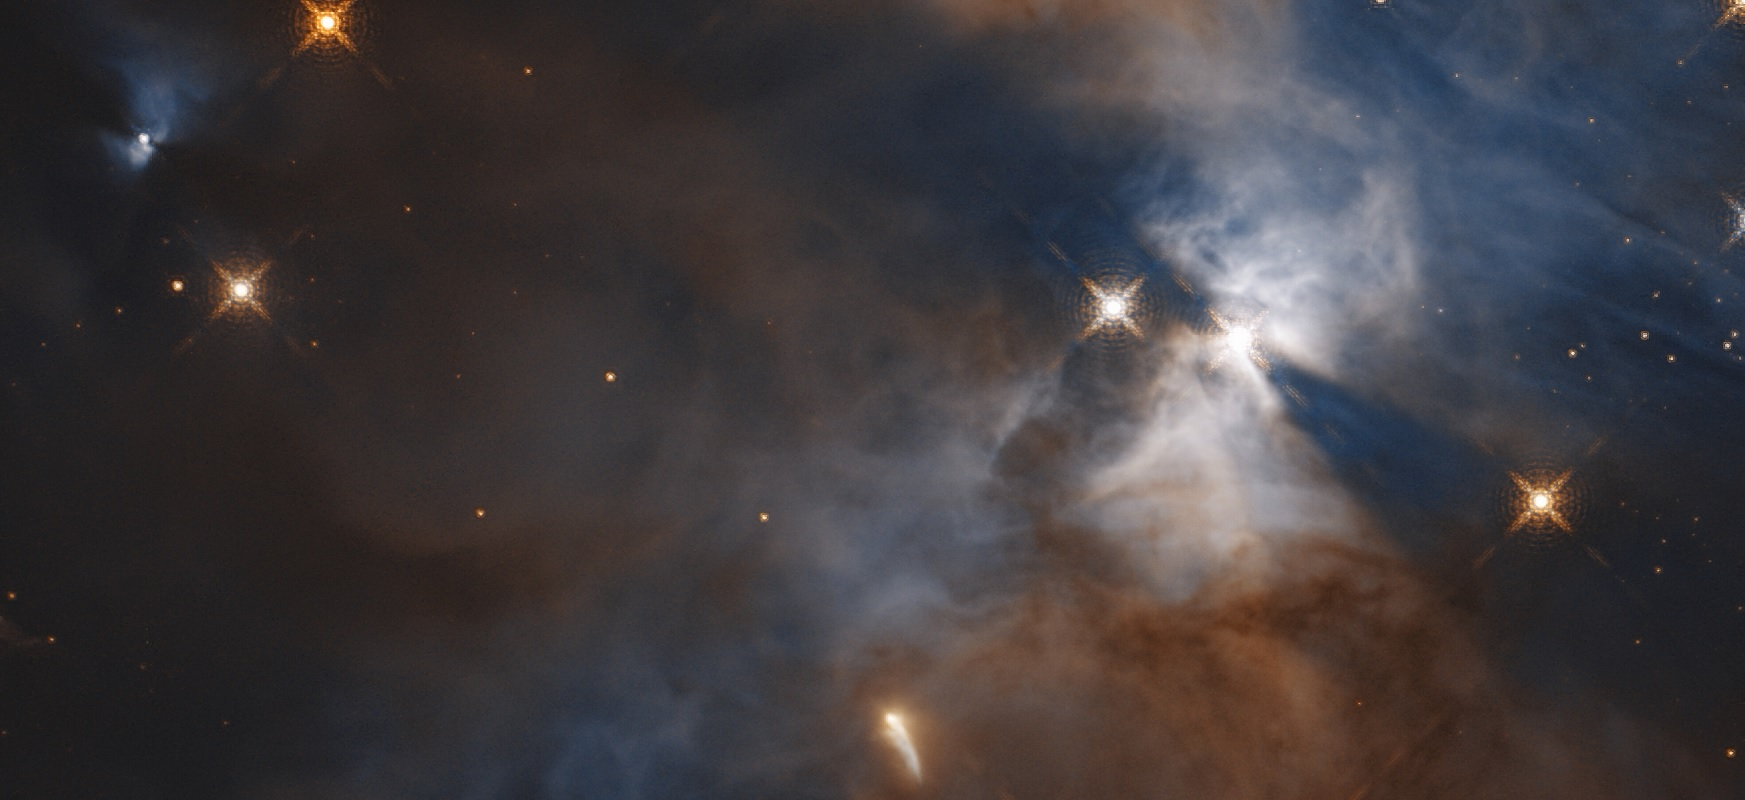 Hubble observed the flutter of the bat s sharp shadow